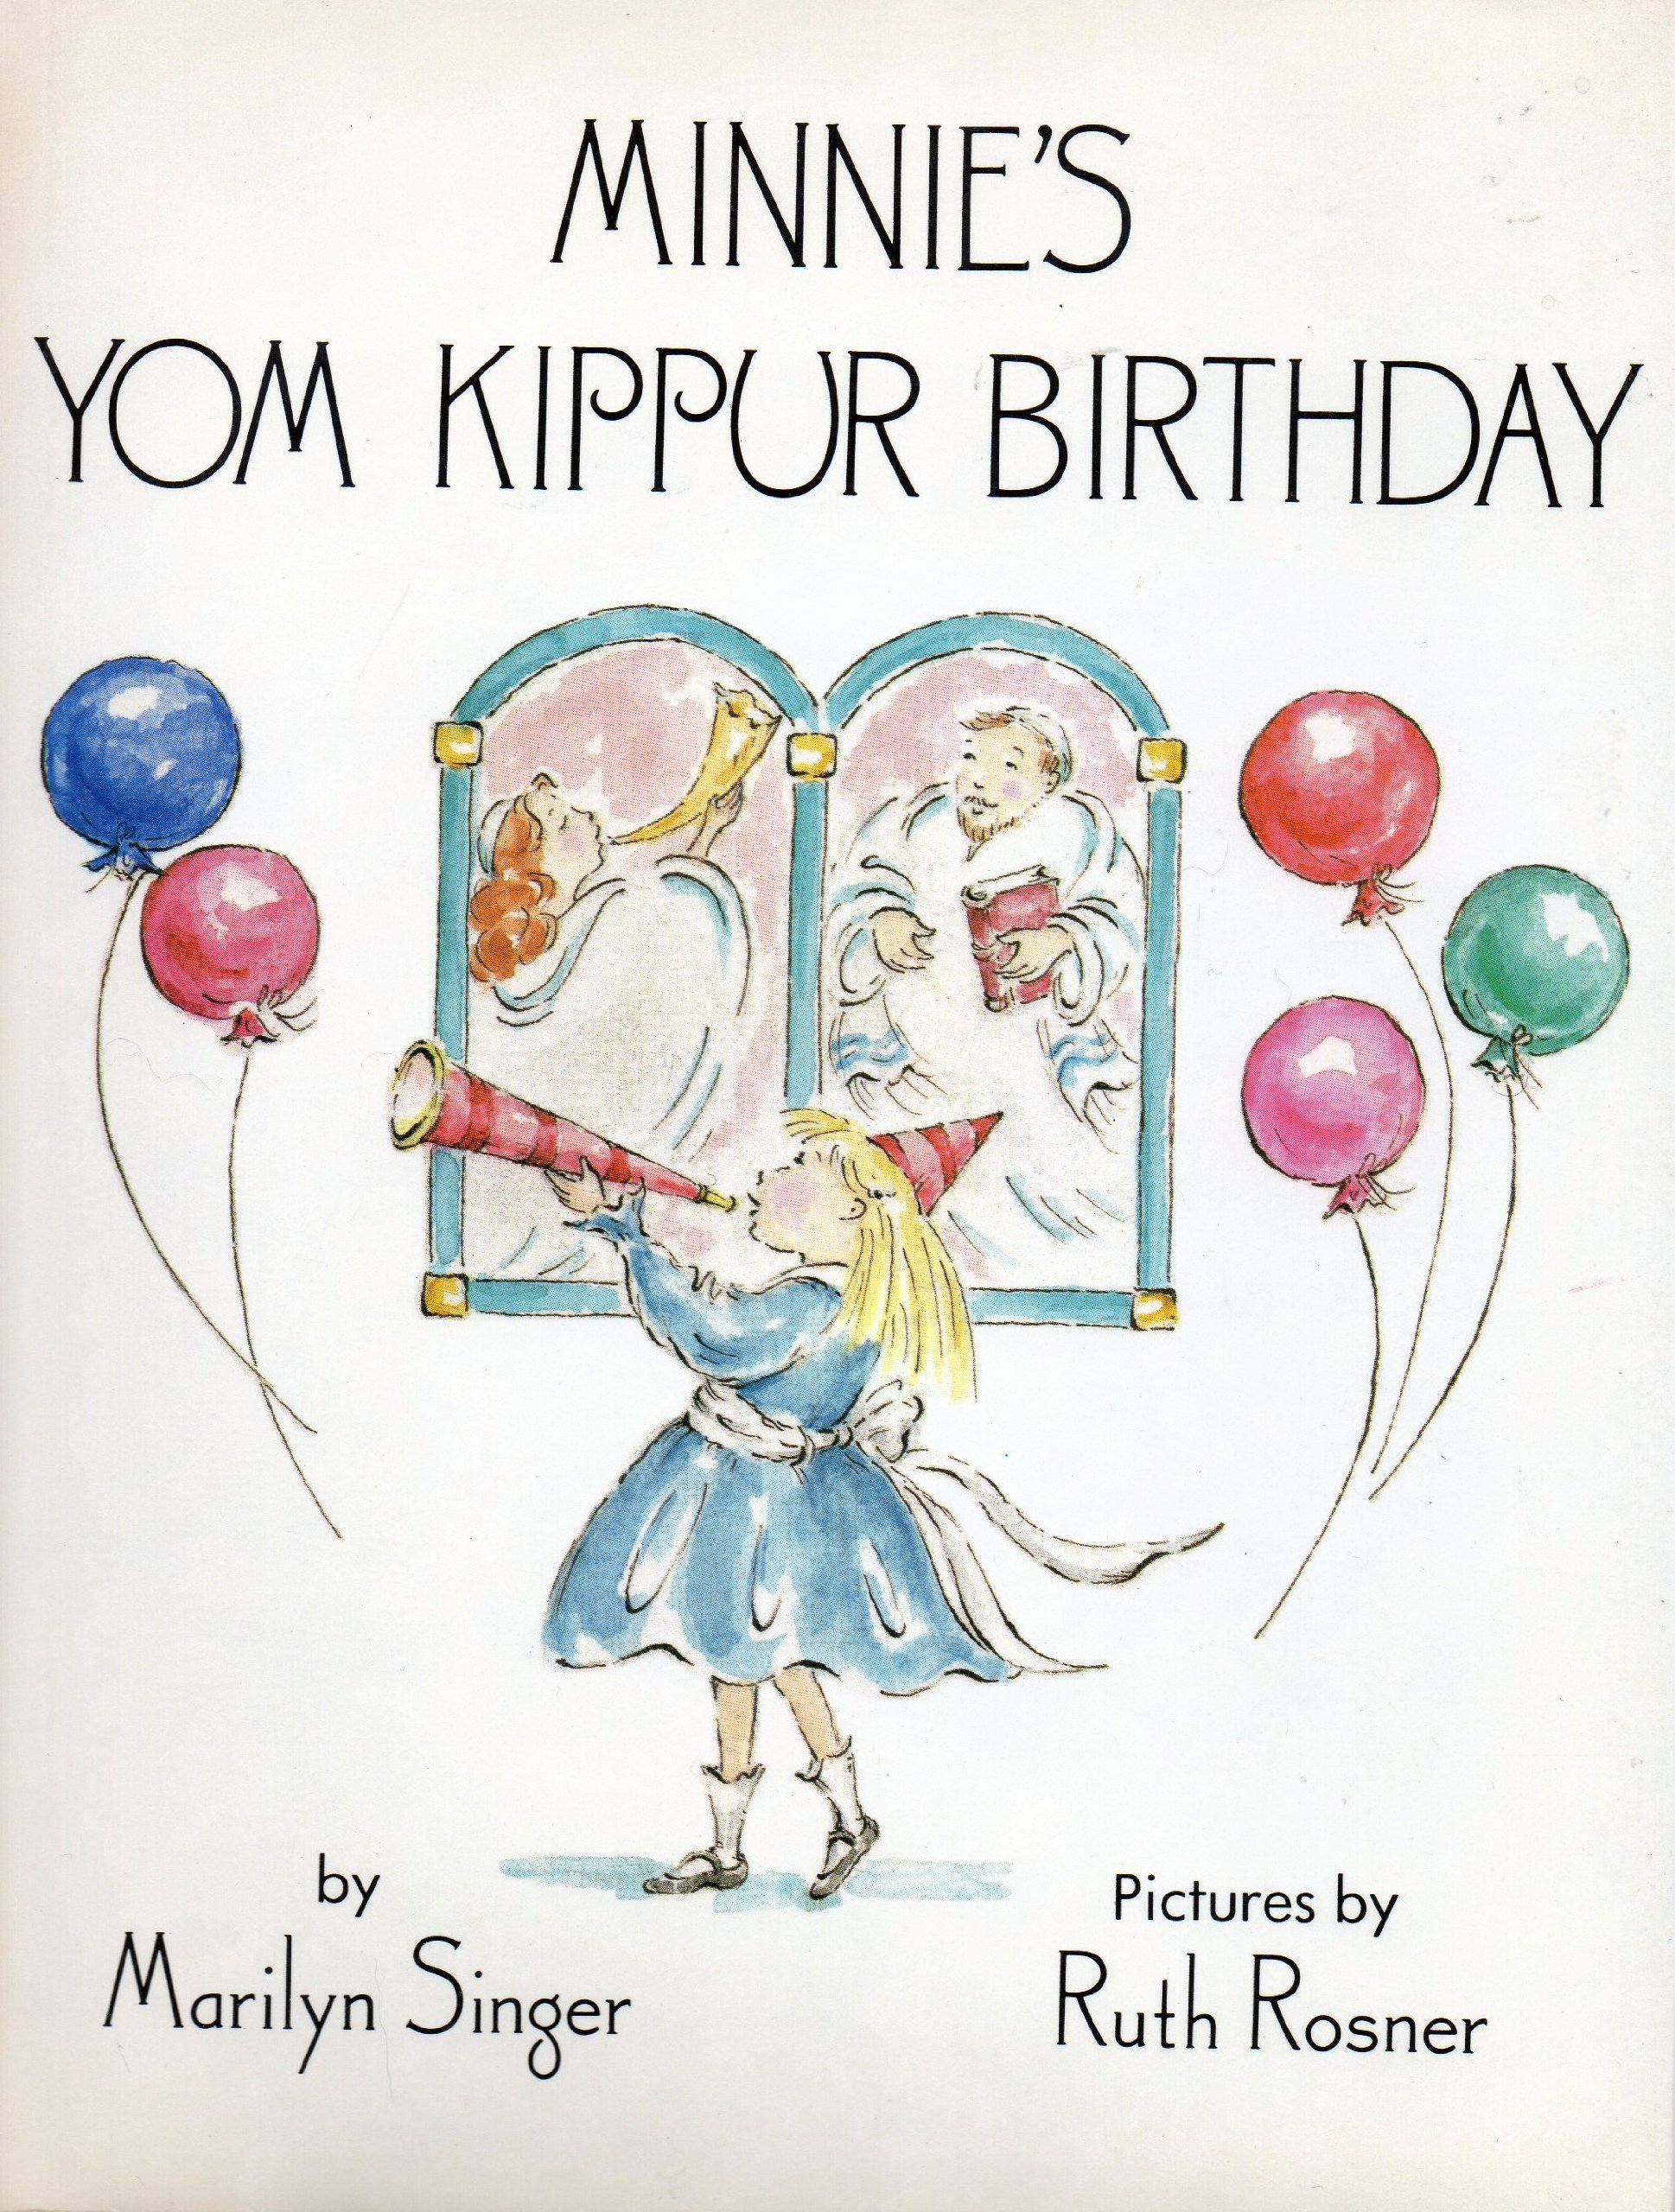 Minnies Yom Kippur Birthday Marilyn Singer Ruth Rosner